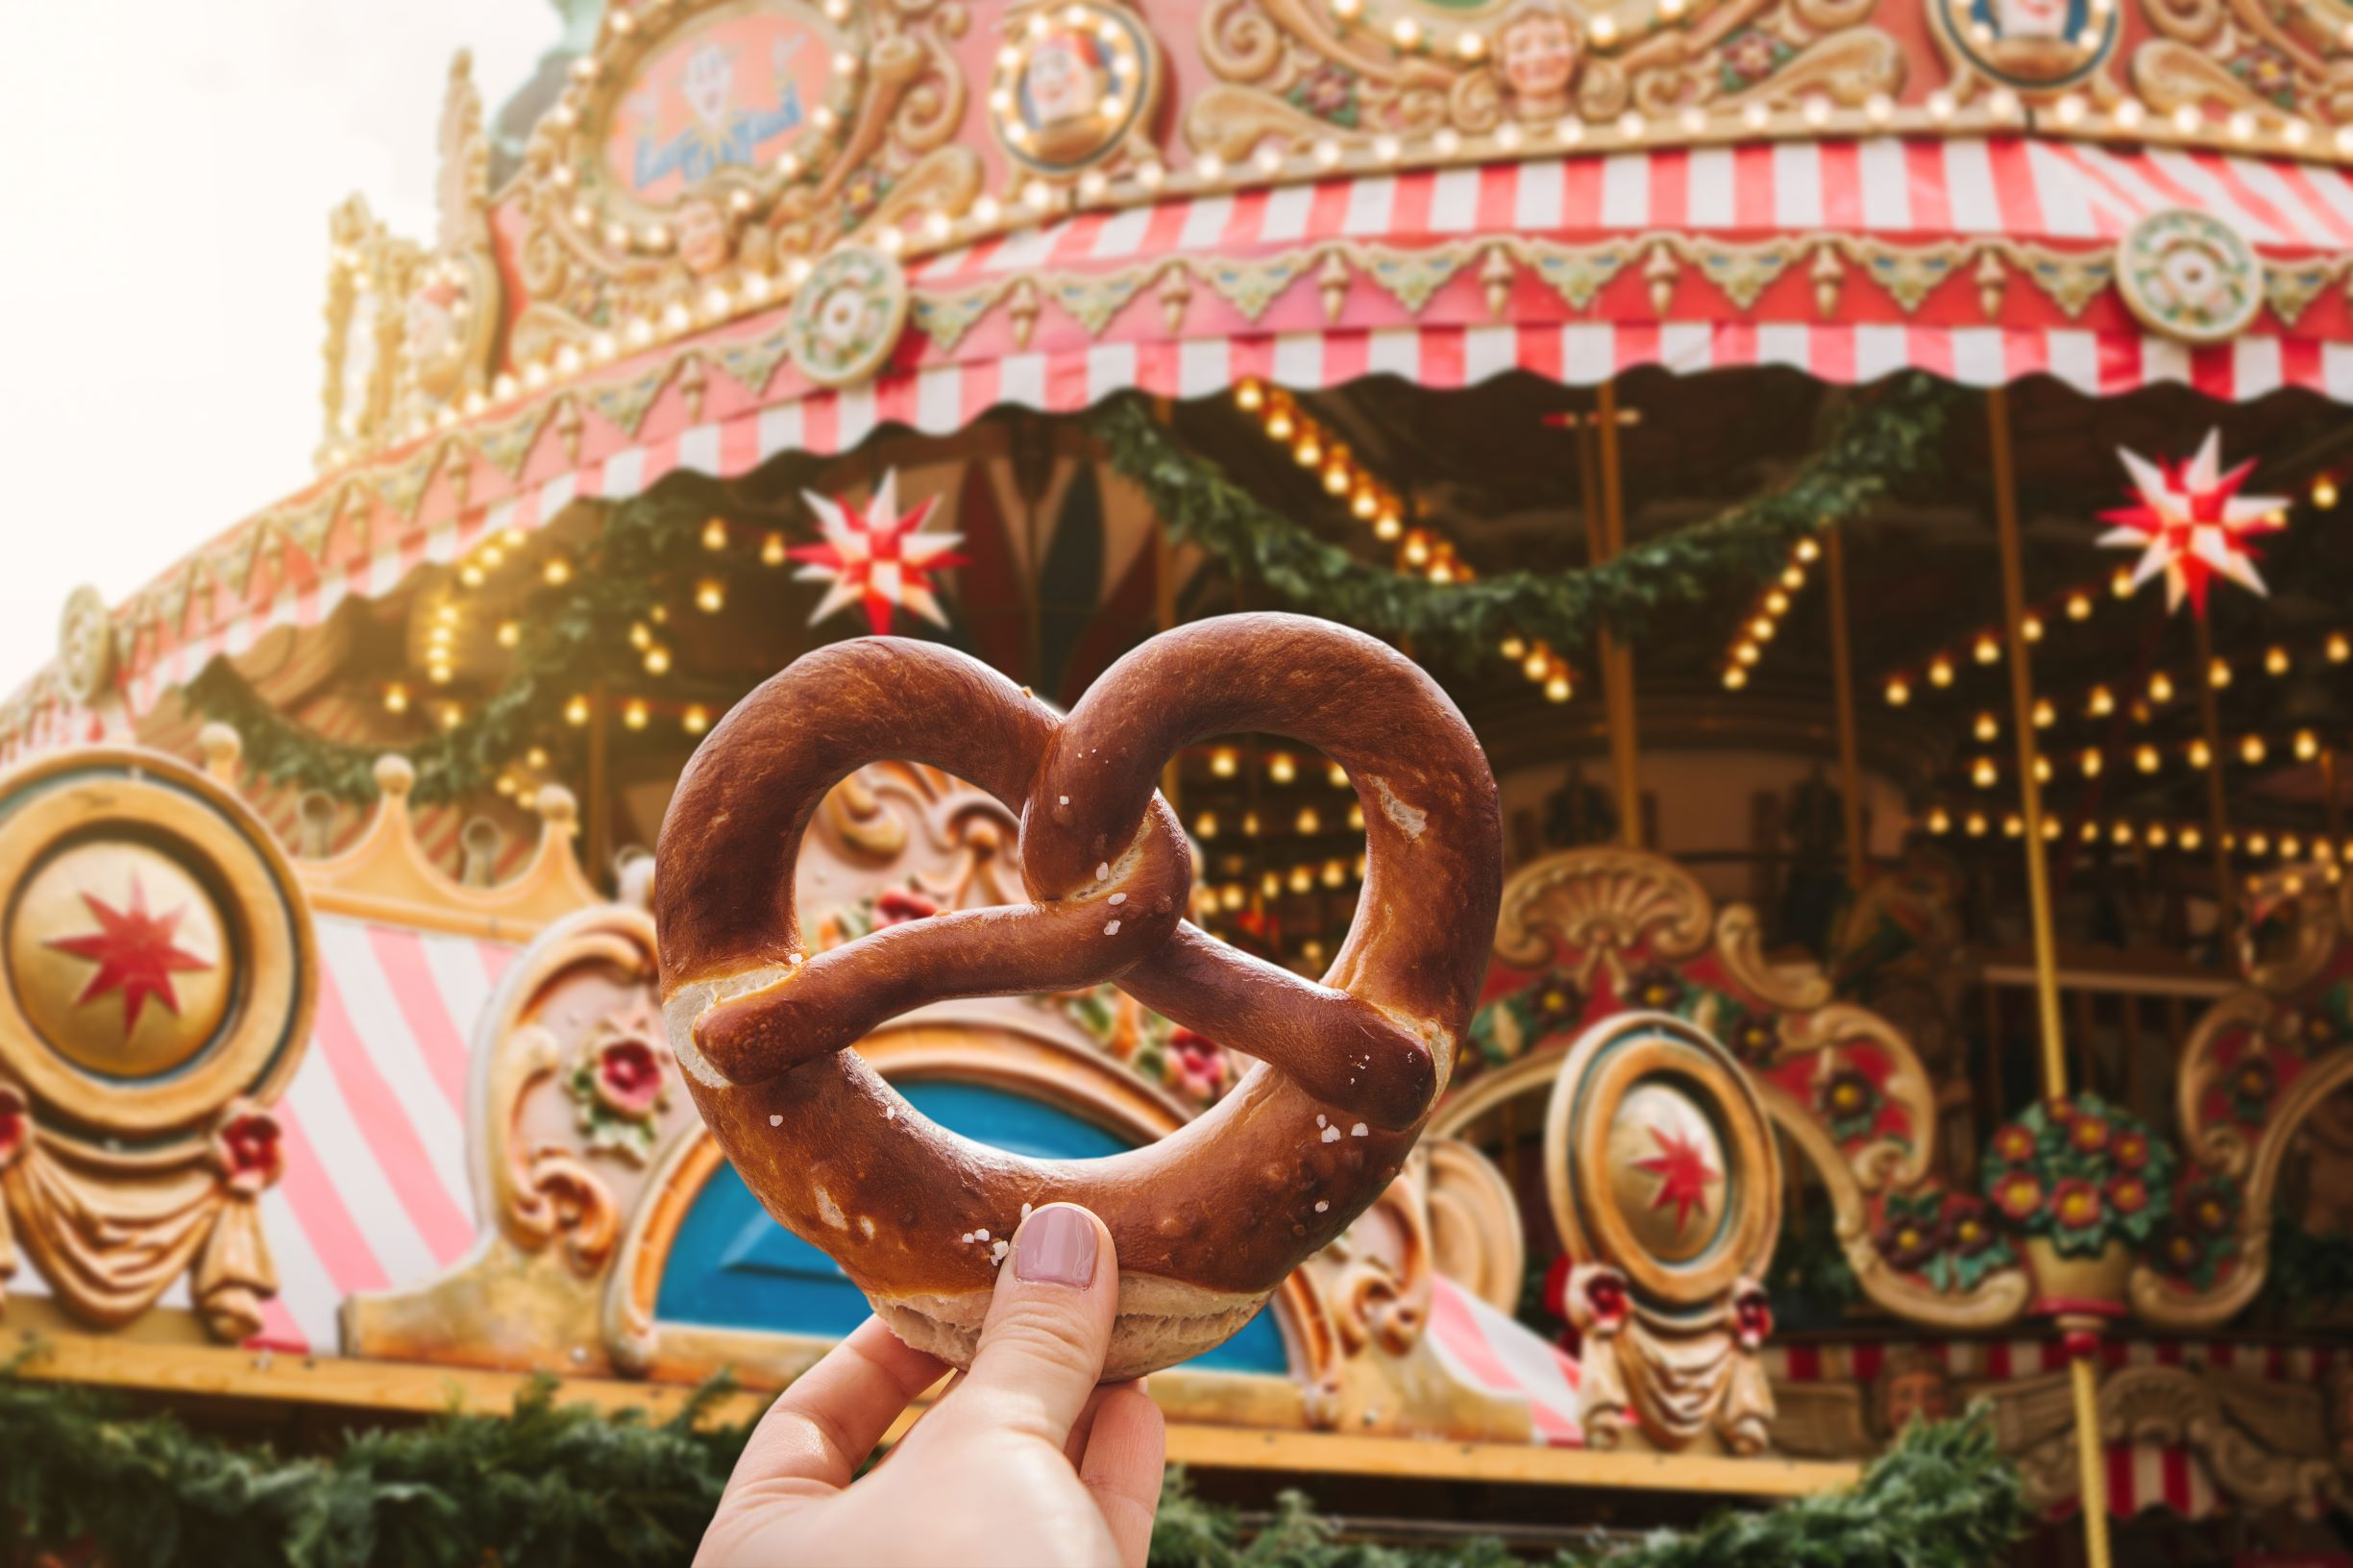 Photo of a large Bavarian pretzel with a Christmas Carousel in the background.